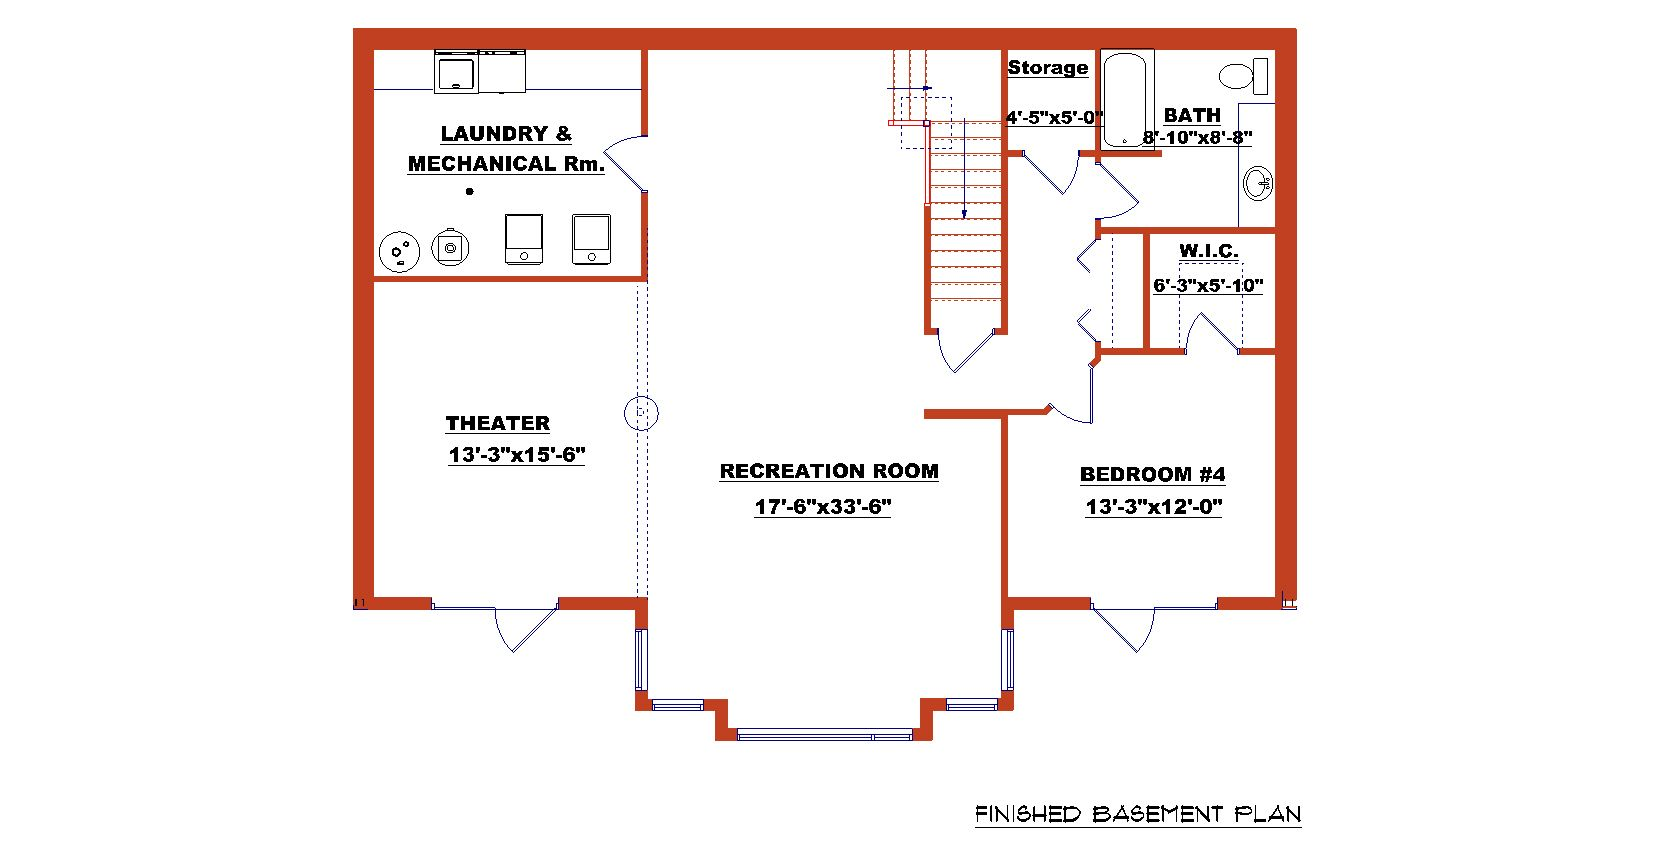 Pin By Susan Kalezis On Layout Ideas Basement Remodeling Plans Basement Floor Plans Basement Flooring